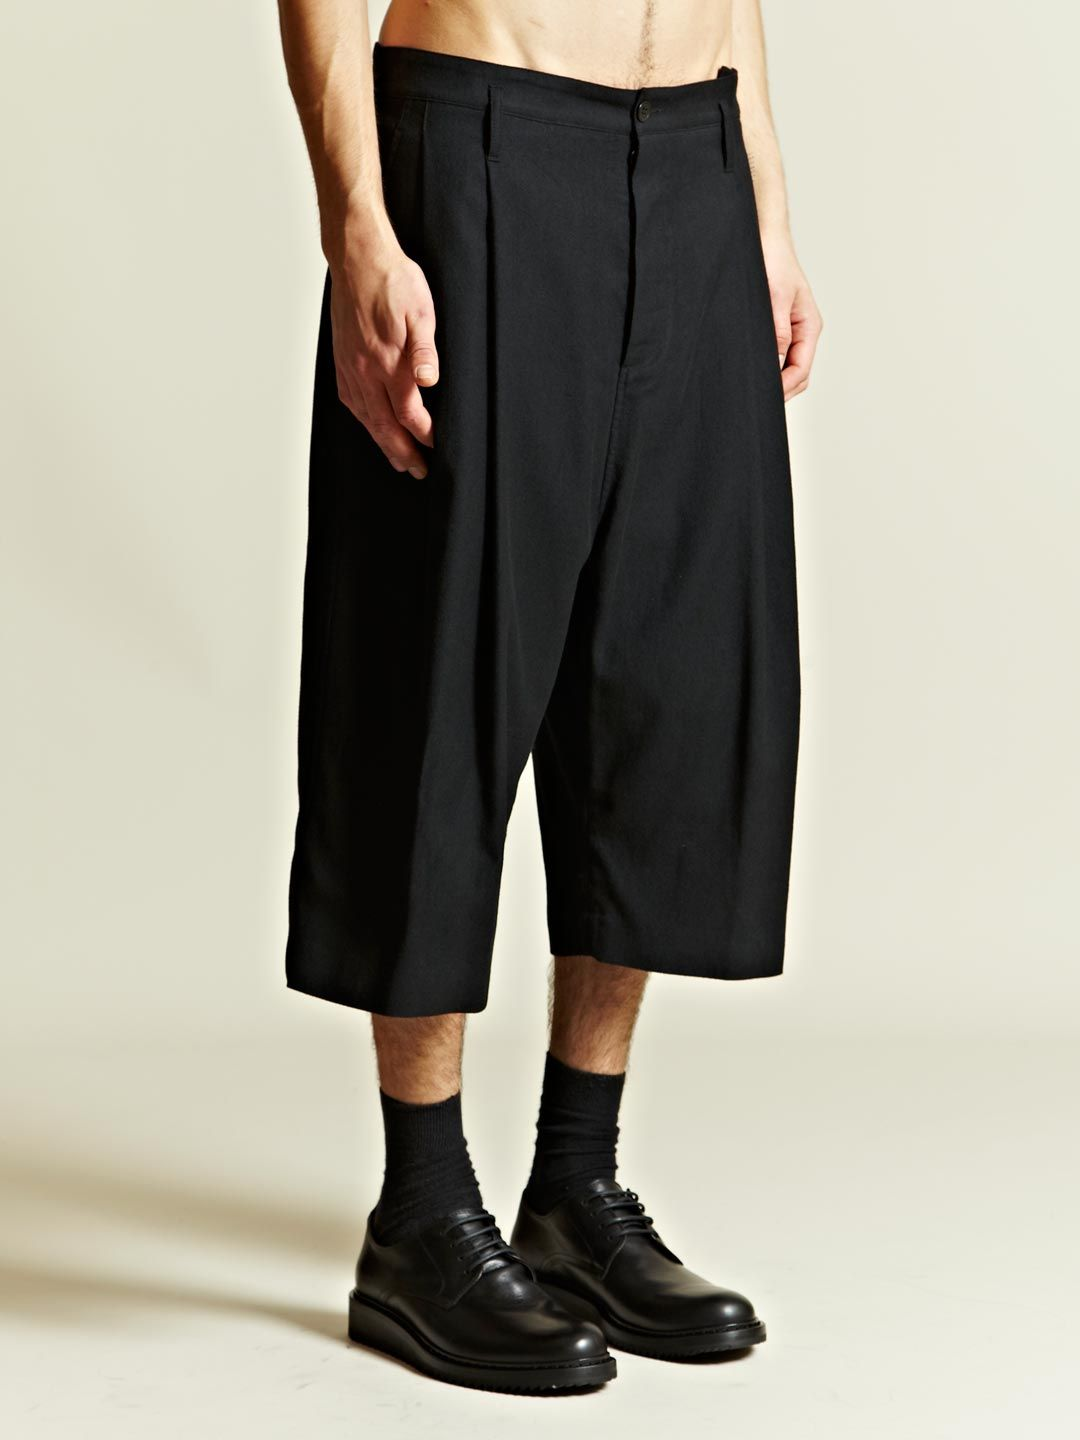 Ann Demeulemeester Men's Front Pleat Shorts